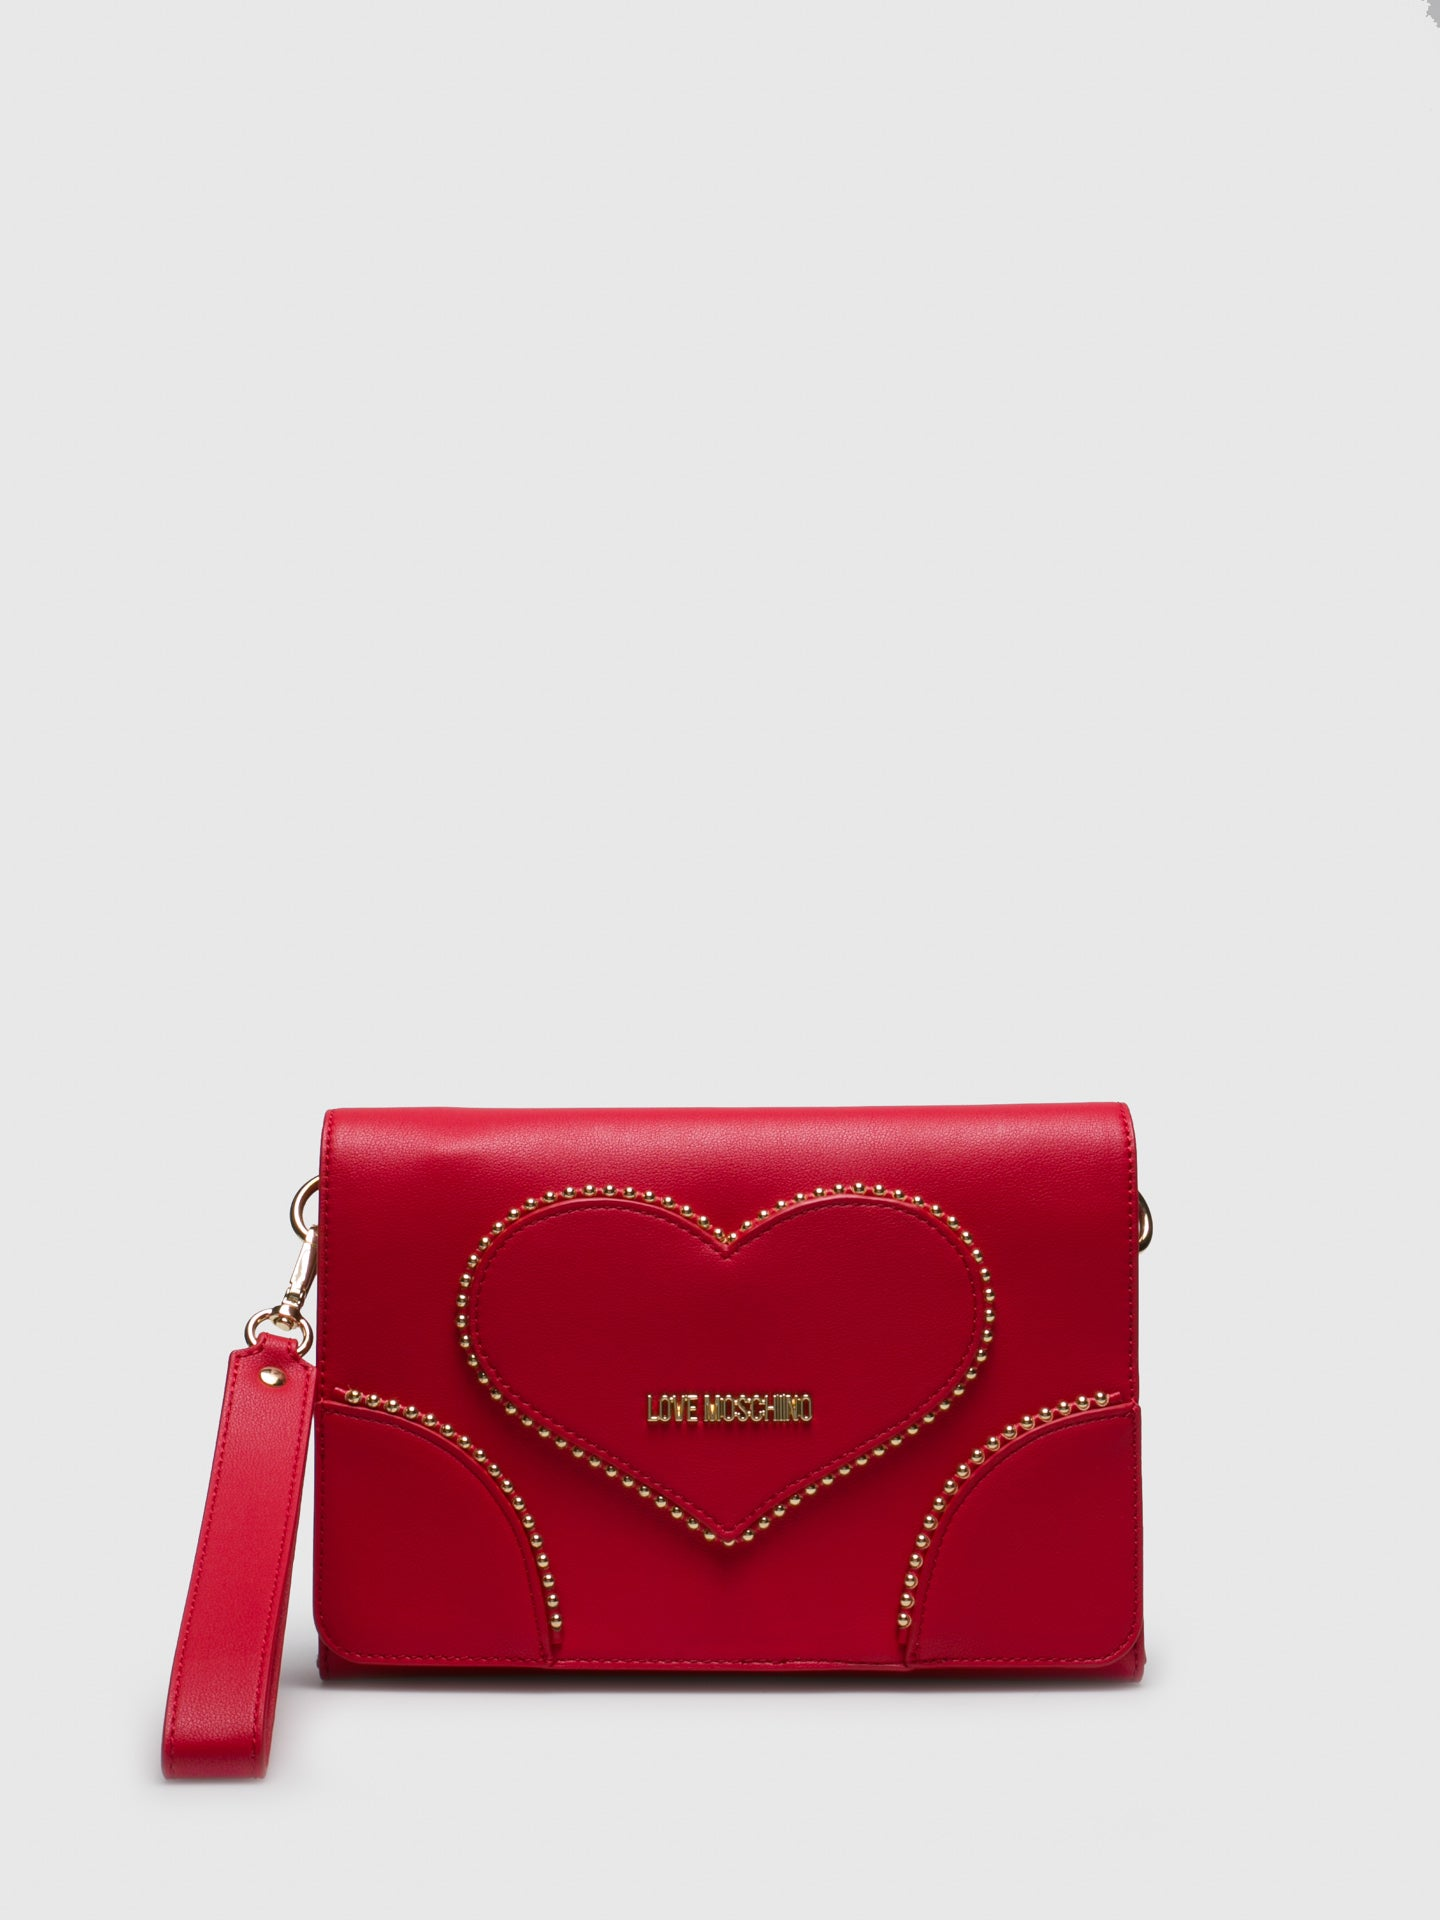 LOVE MOSCHINO Red Clutch